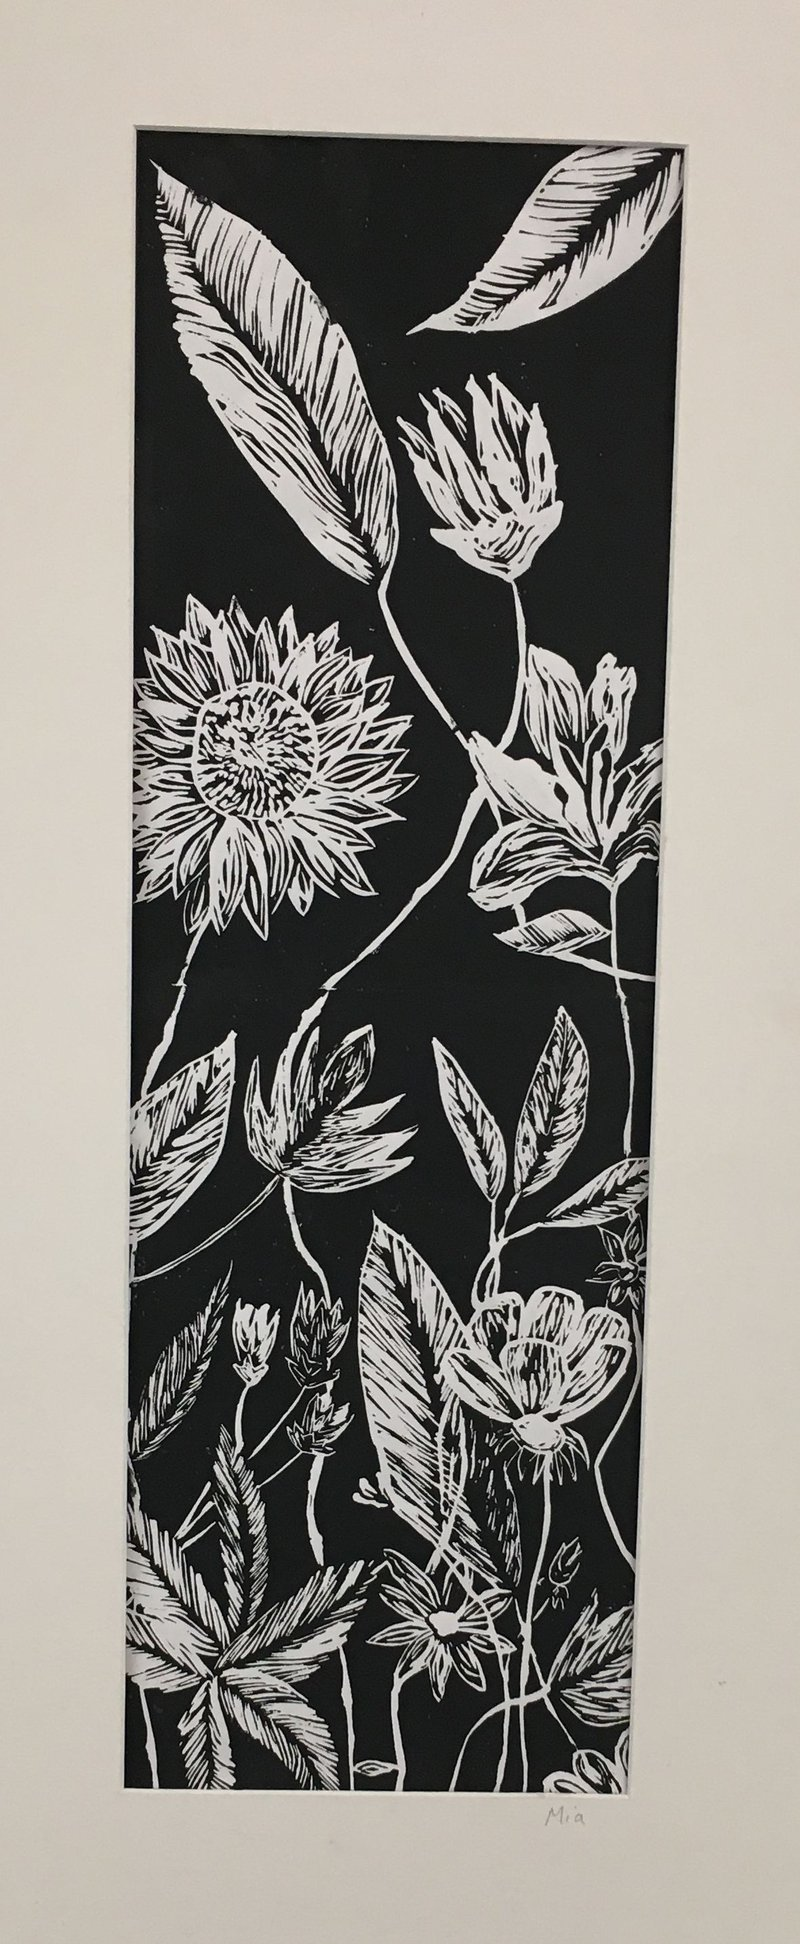 Year 9 2018 - Linoprints - The Garden of Delights